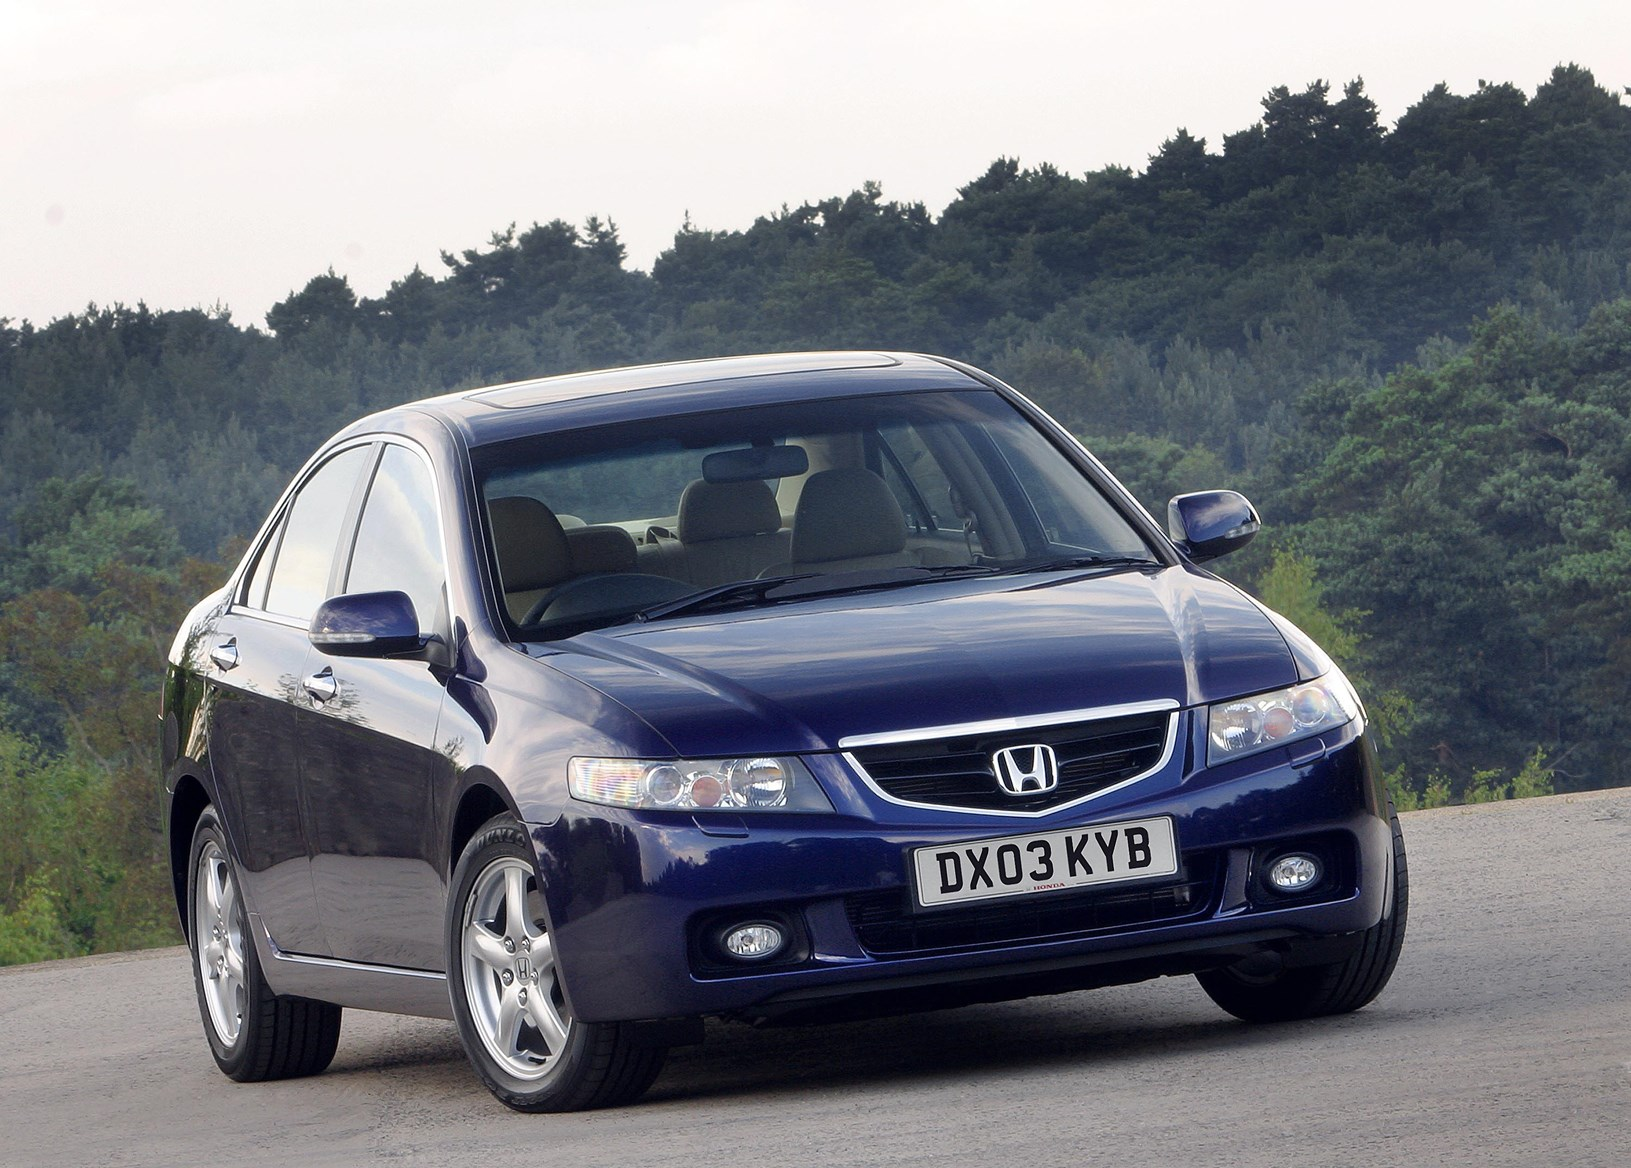 2003 Honda Accord For Sale >> Honda Accord Saloon Review (2003 - 2008) | Parkers